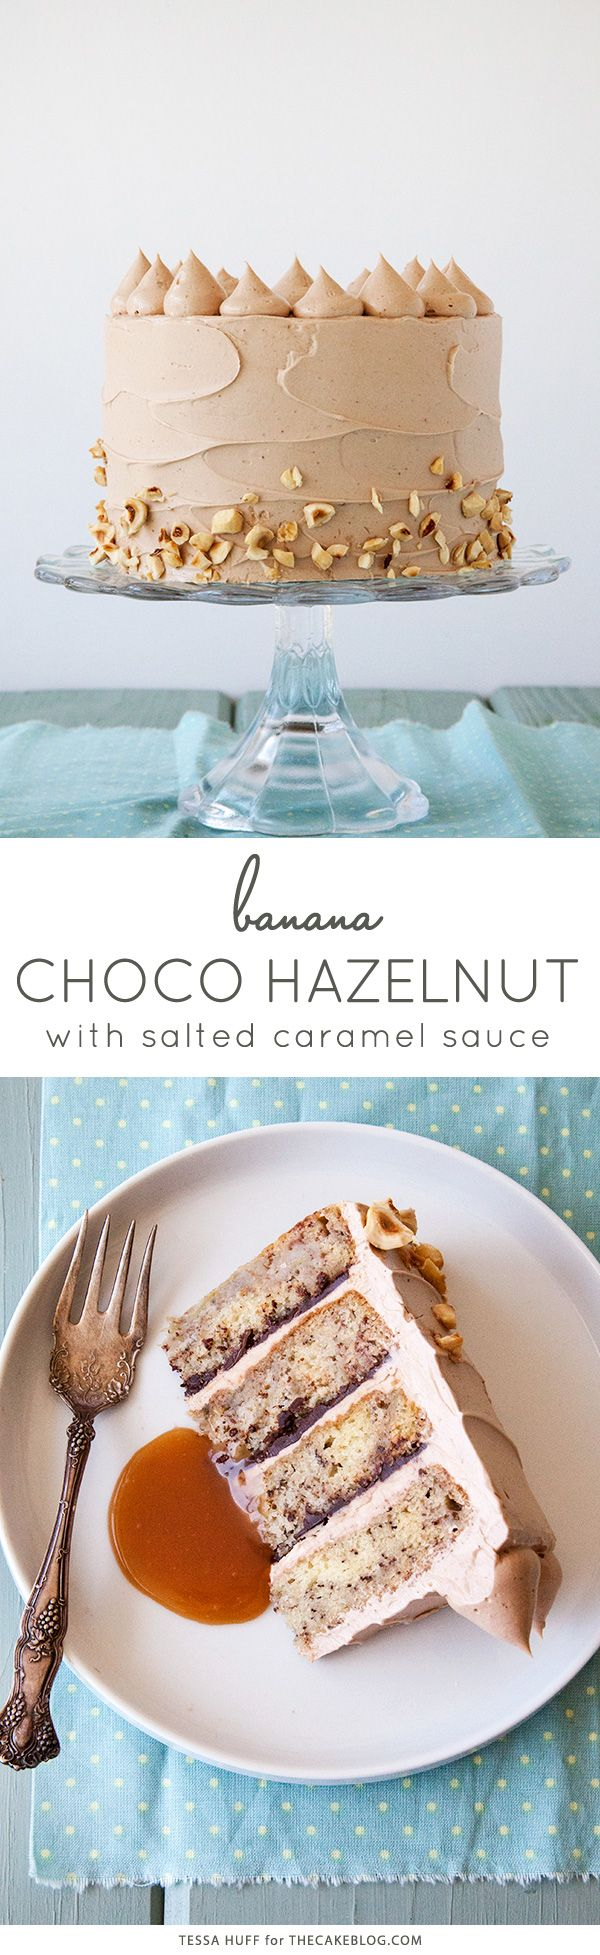 Banana Chocolate Hazelnut Cake with Salted Caramel Sauce. Or, in other words, all of my favorite flavors in one cake. This one is